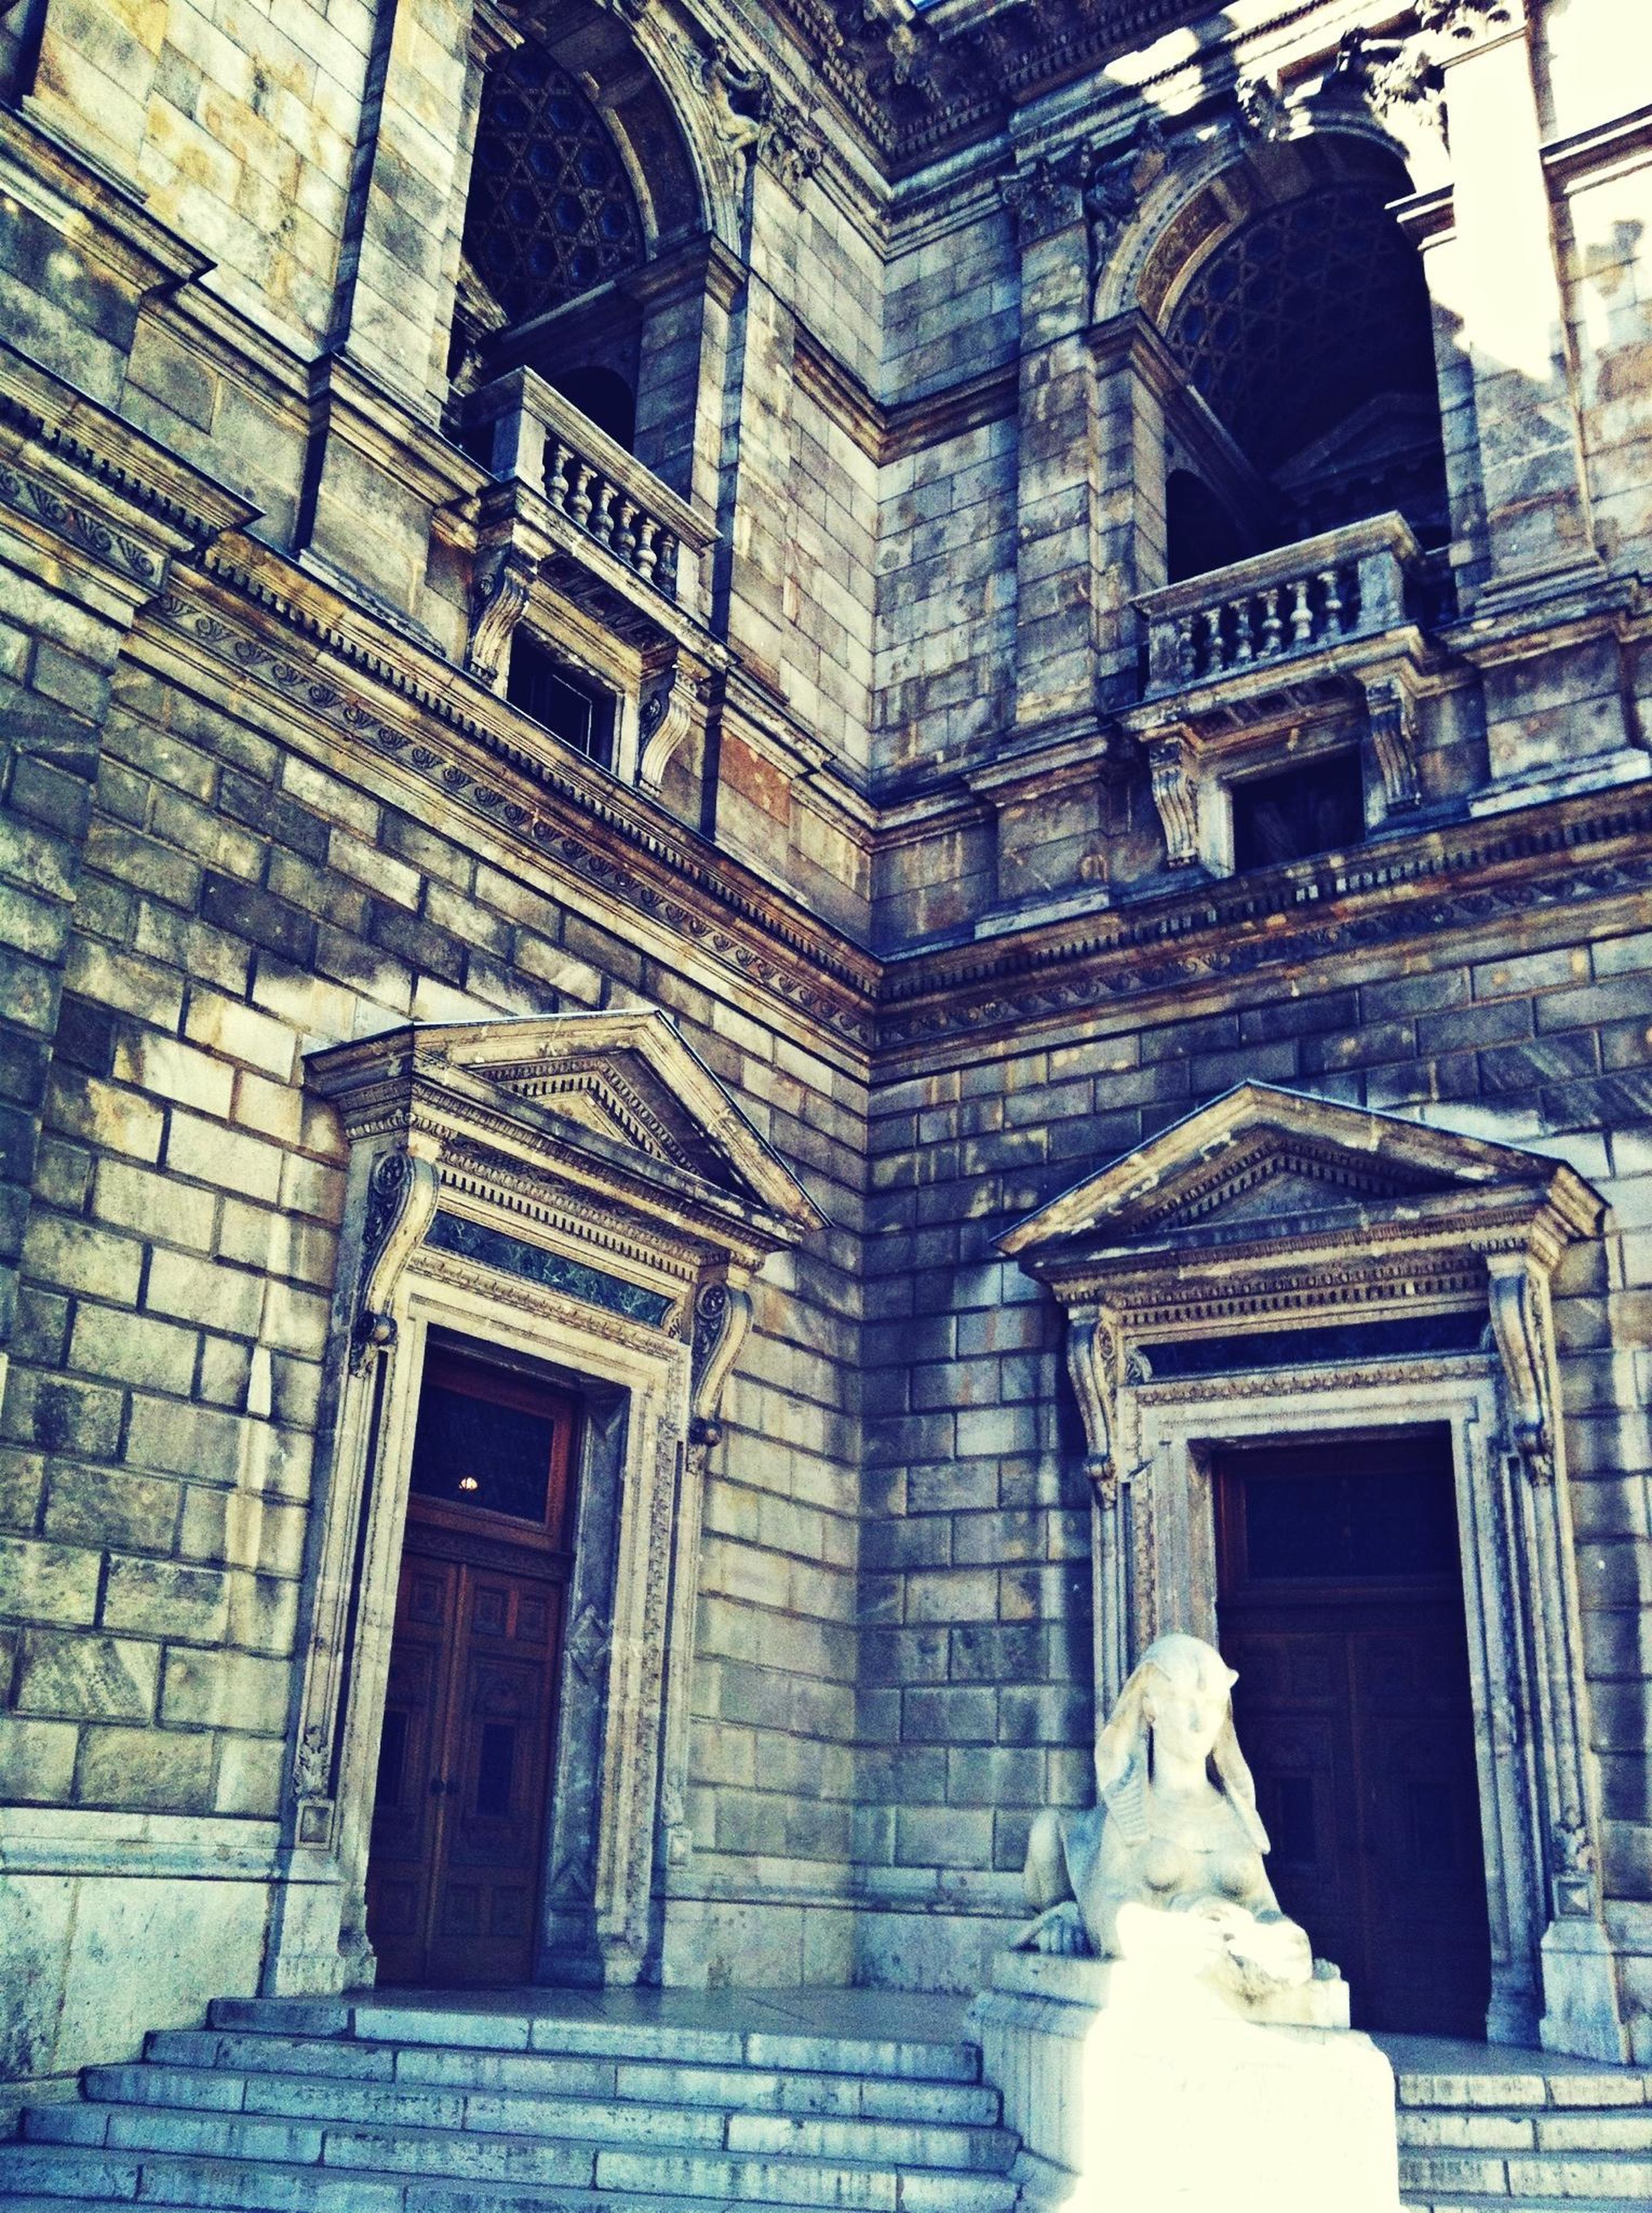 architecture, building exterior, built structure, low angle view, window, old, statue, building, history, facade, sculpture, arch, art and craft, human representation, outdoors, day, no people, art, entrance, historic